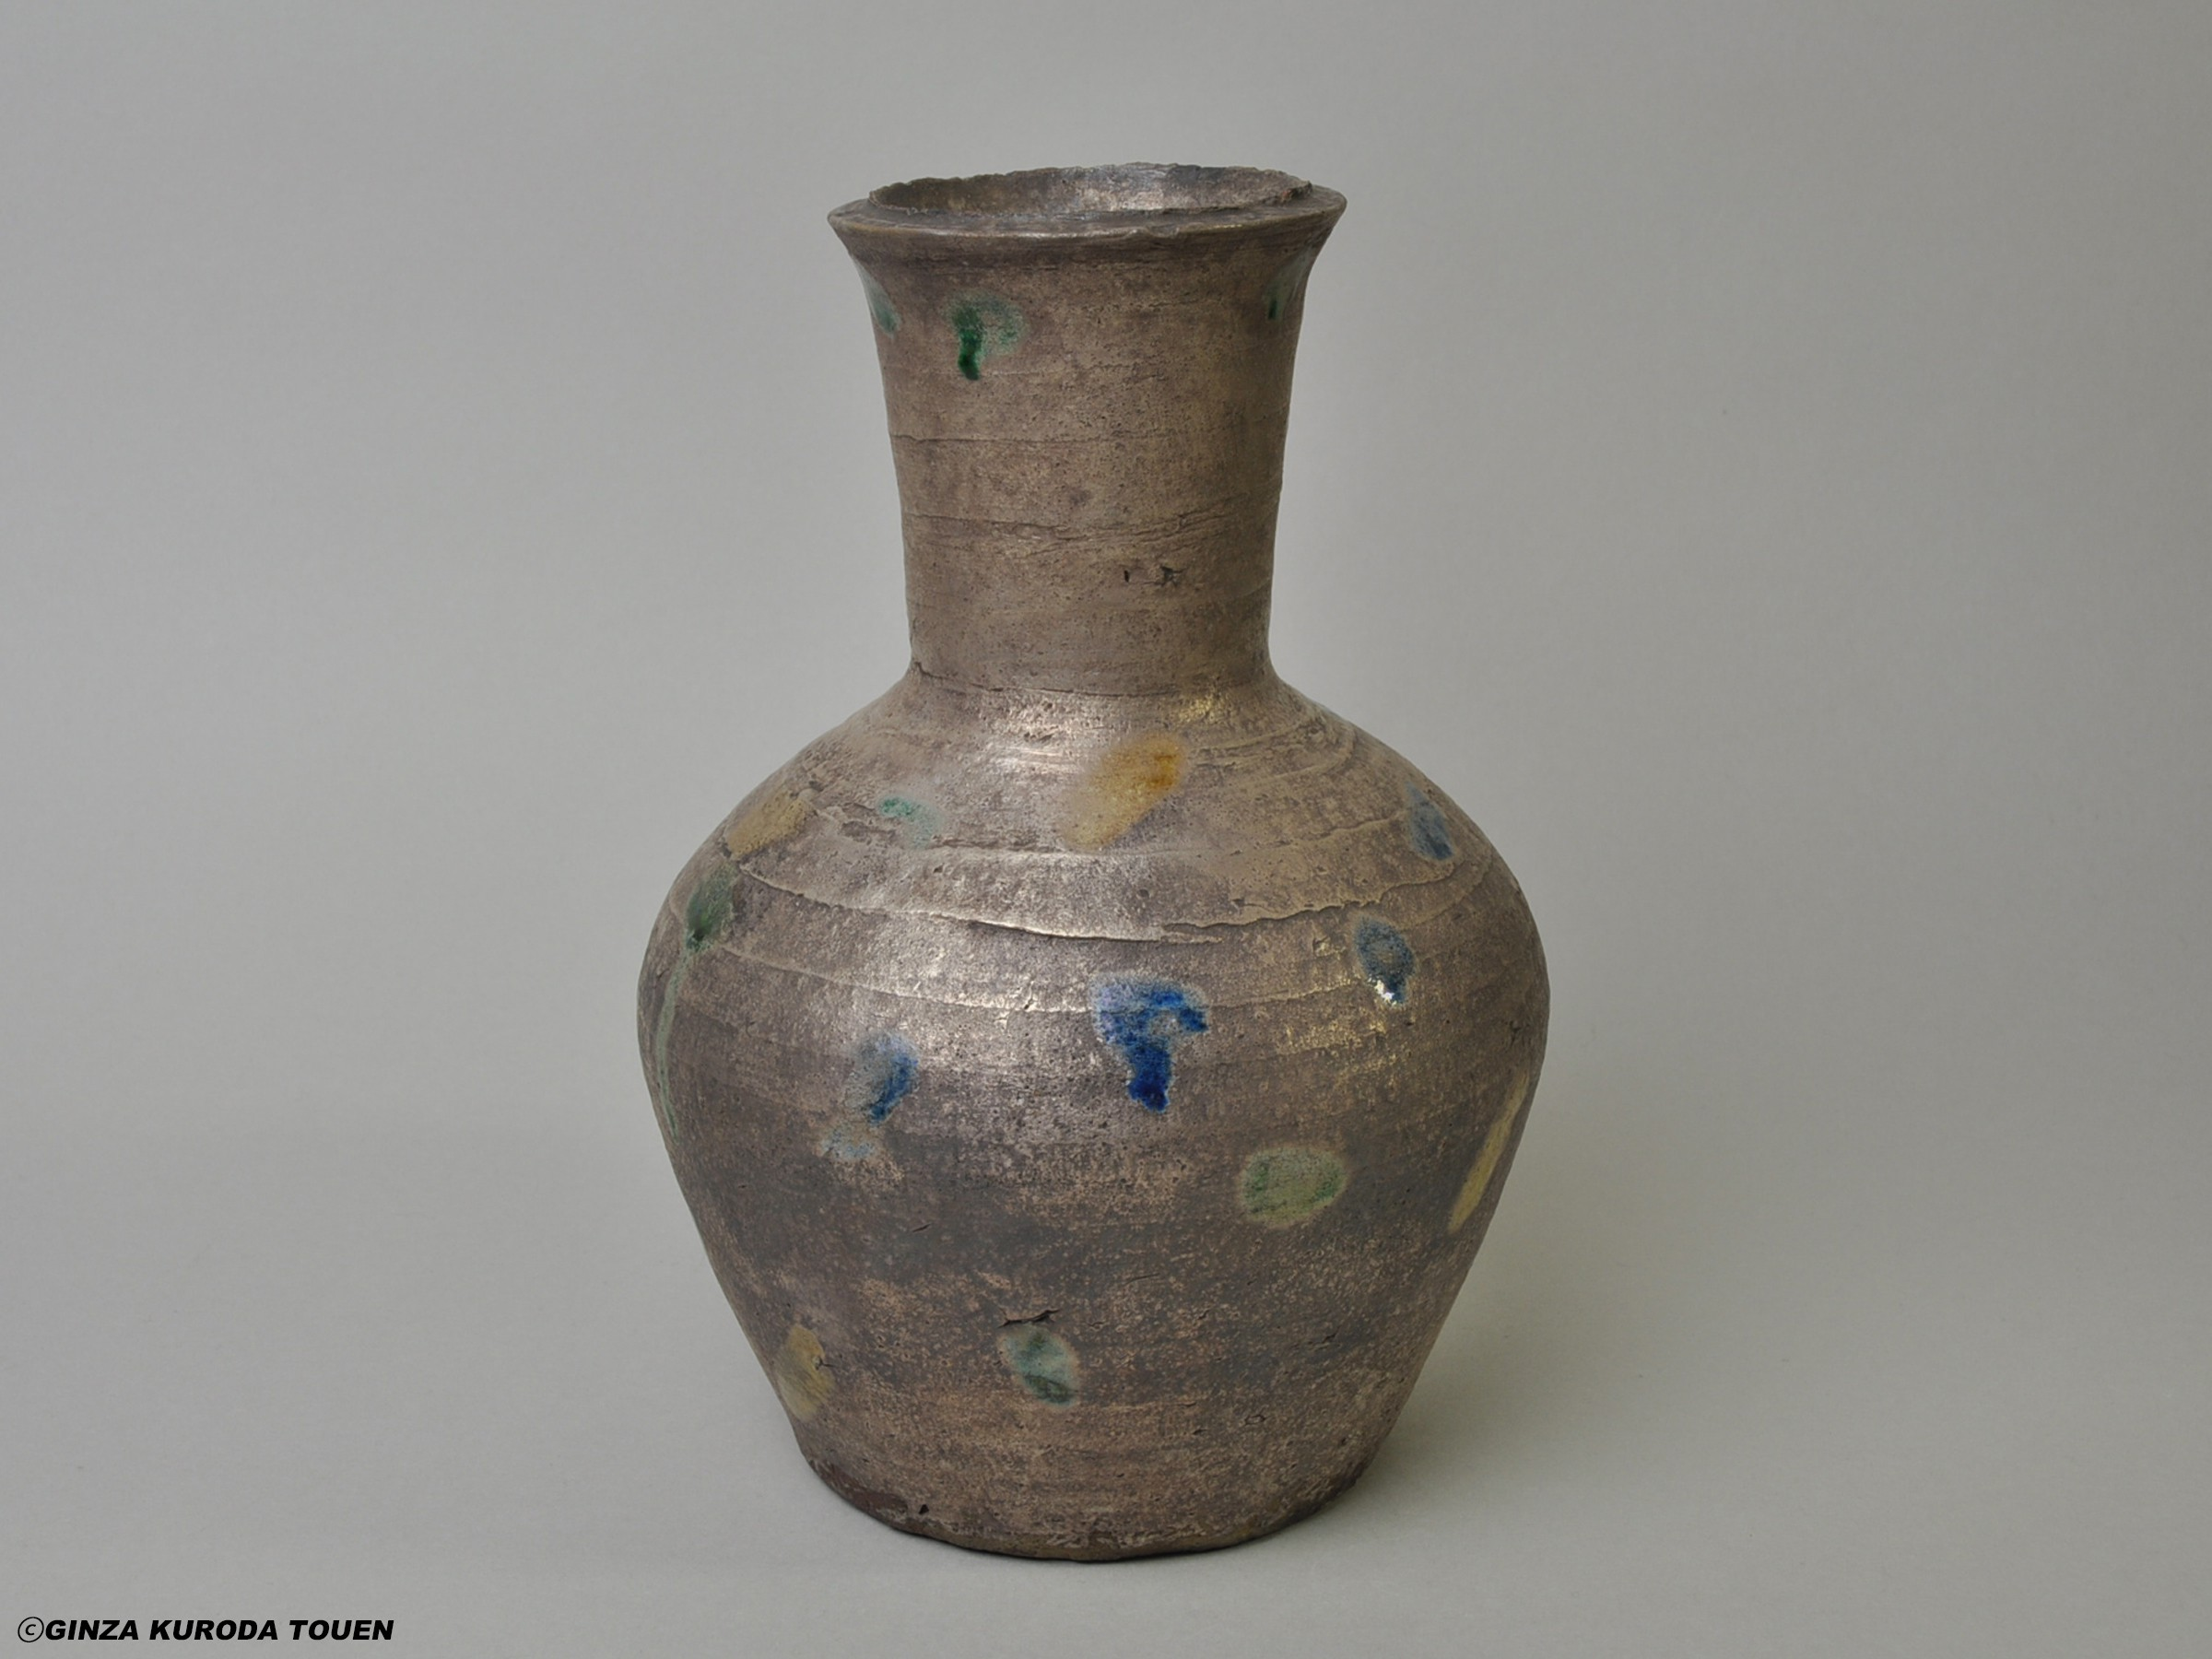 Rosanjin Kitaoji: Flower vase, three colored spottings on silver paint, Turnip shape